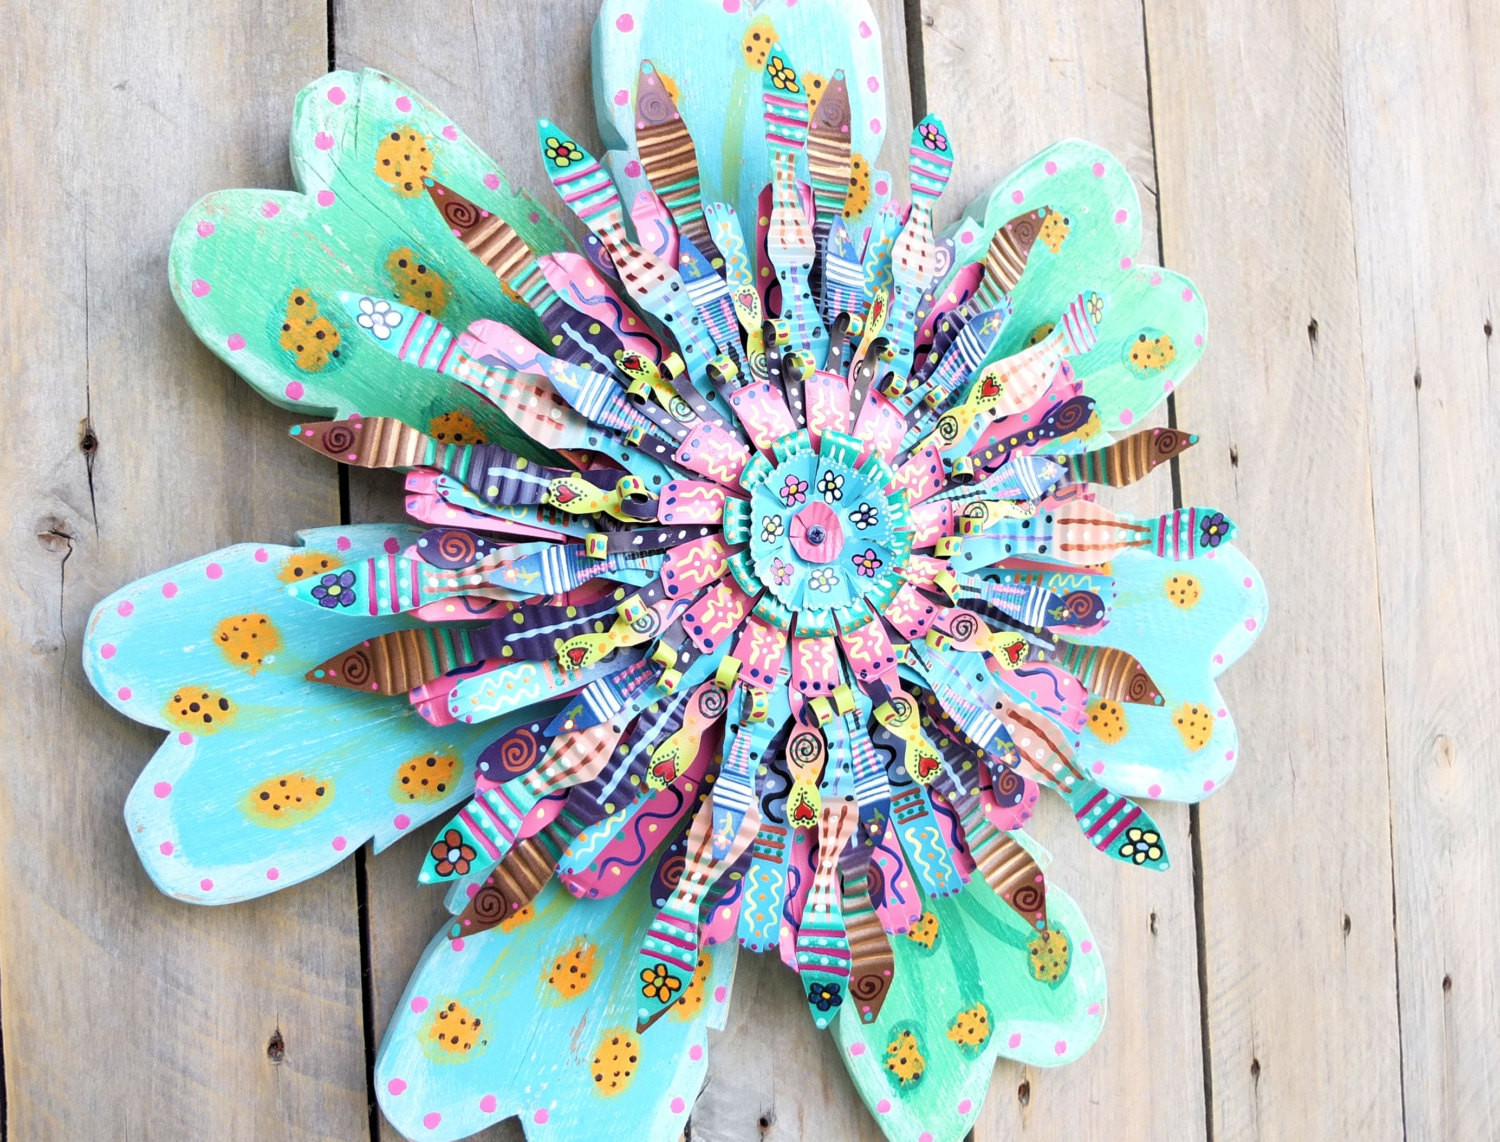 Best ideas about Boho Wall Art . Save or Pin Bohemian Decor Boho Wall Art Turquoise Wall by SalvageandBloom Now.